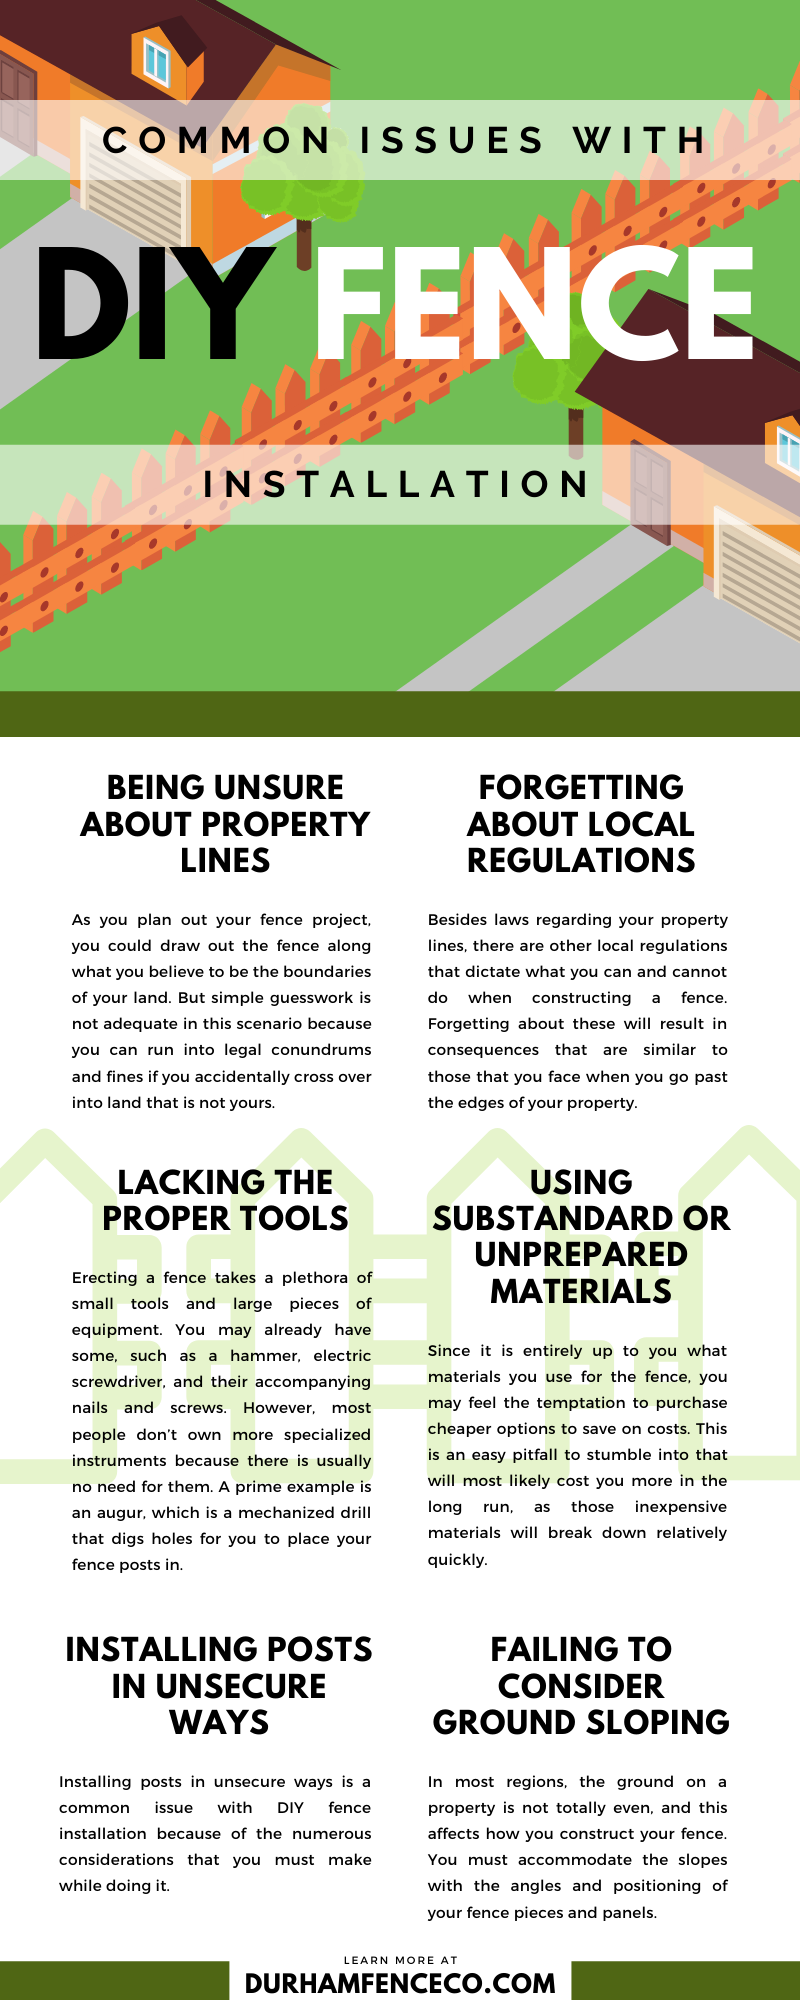 Common Issues With DIY Fence Installation